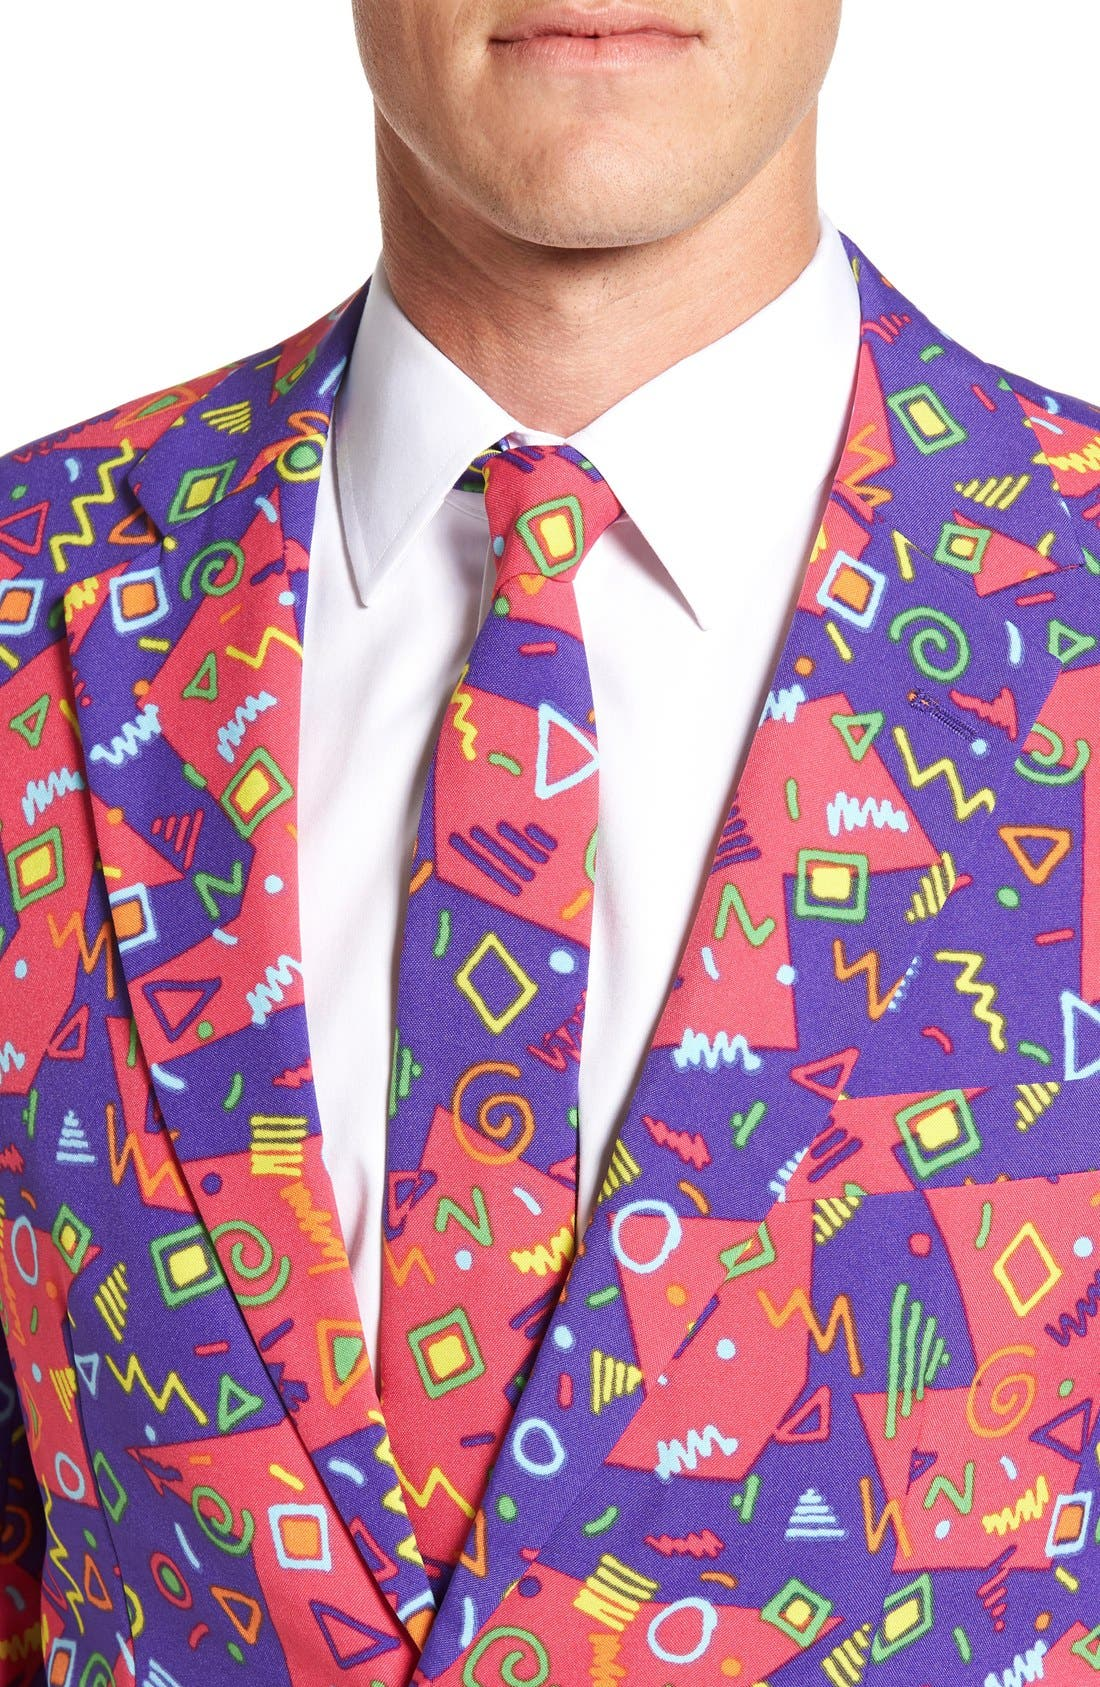 'The Fresh Prince' Trim Fit Two-Piece Suit with Tie,                             Alternate thumbnail 4, color,